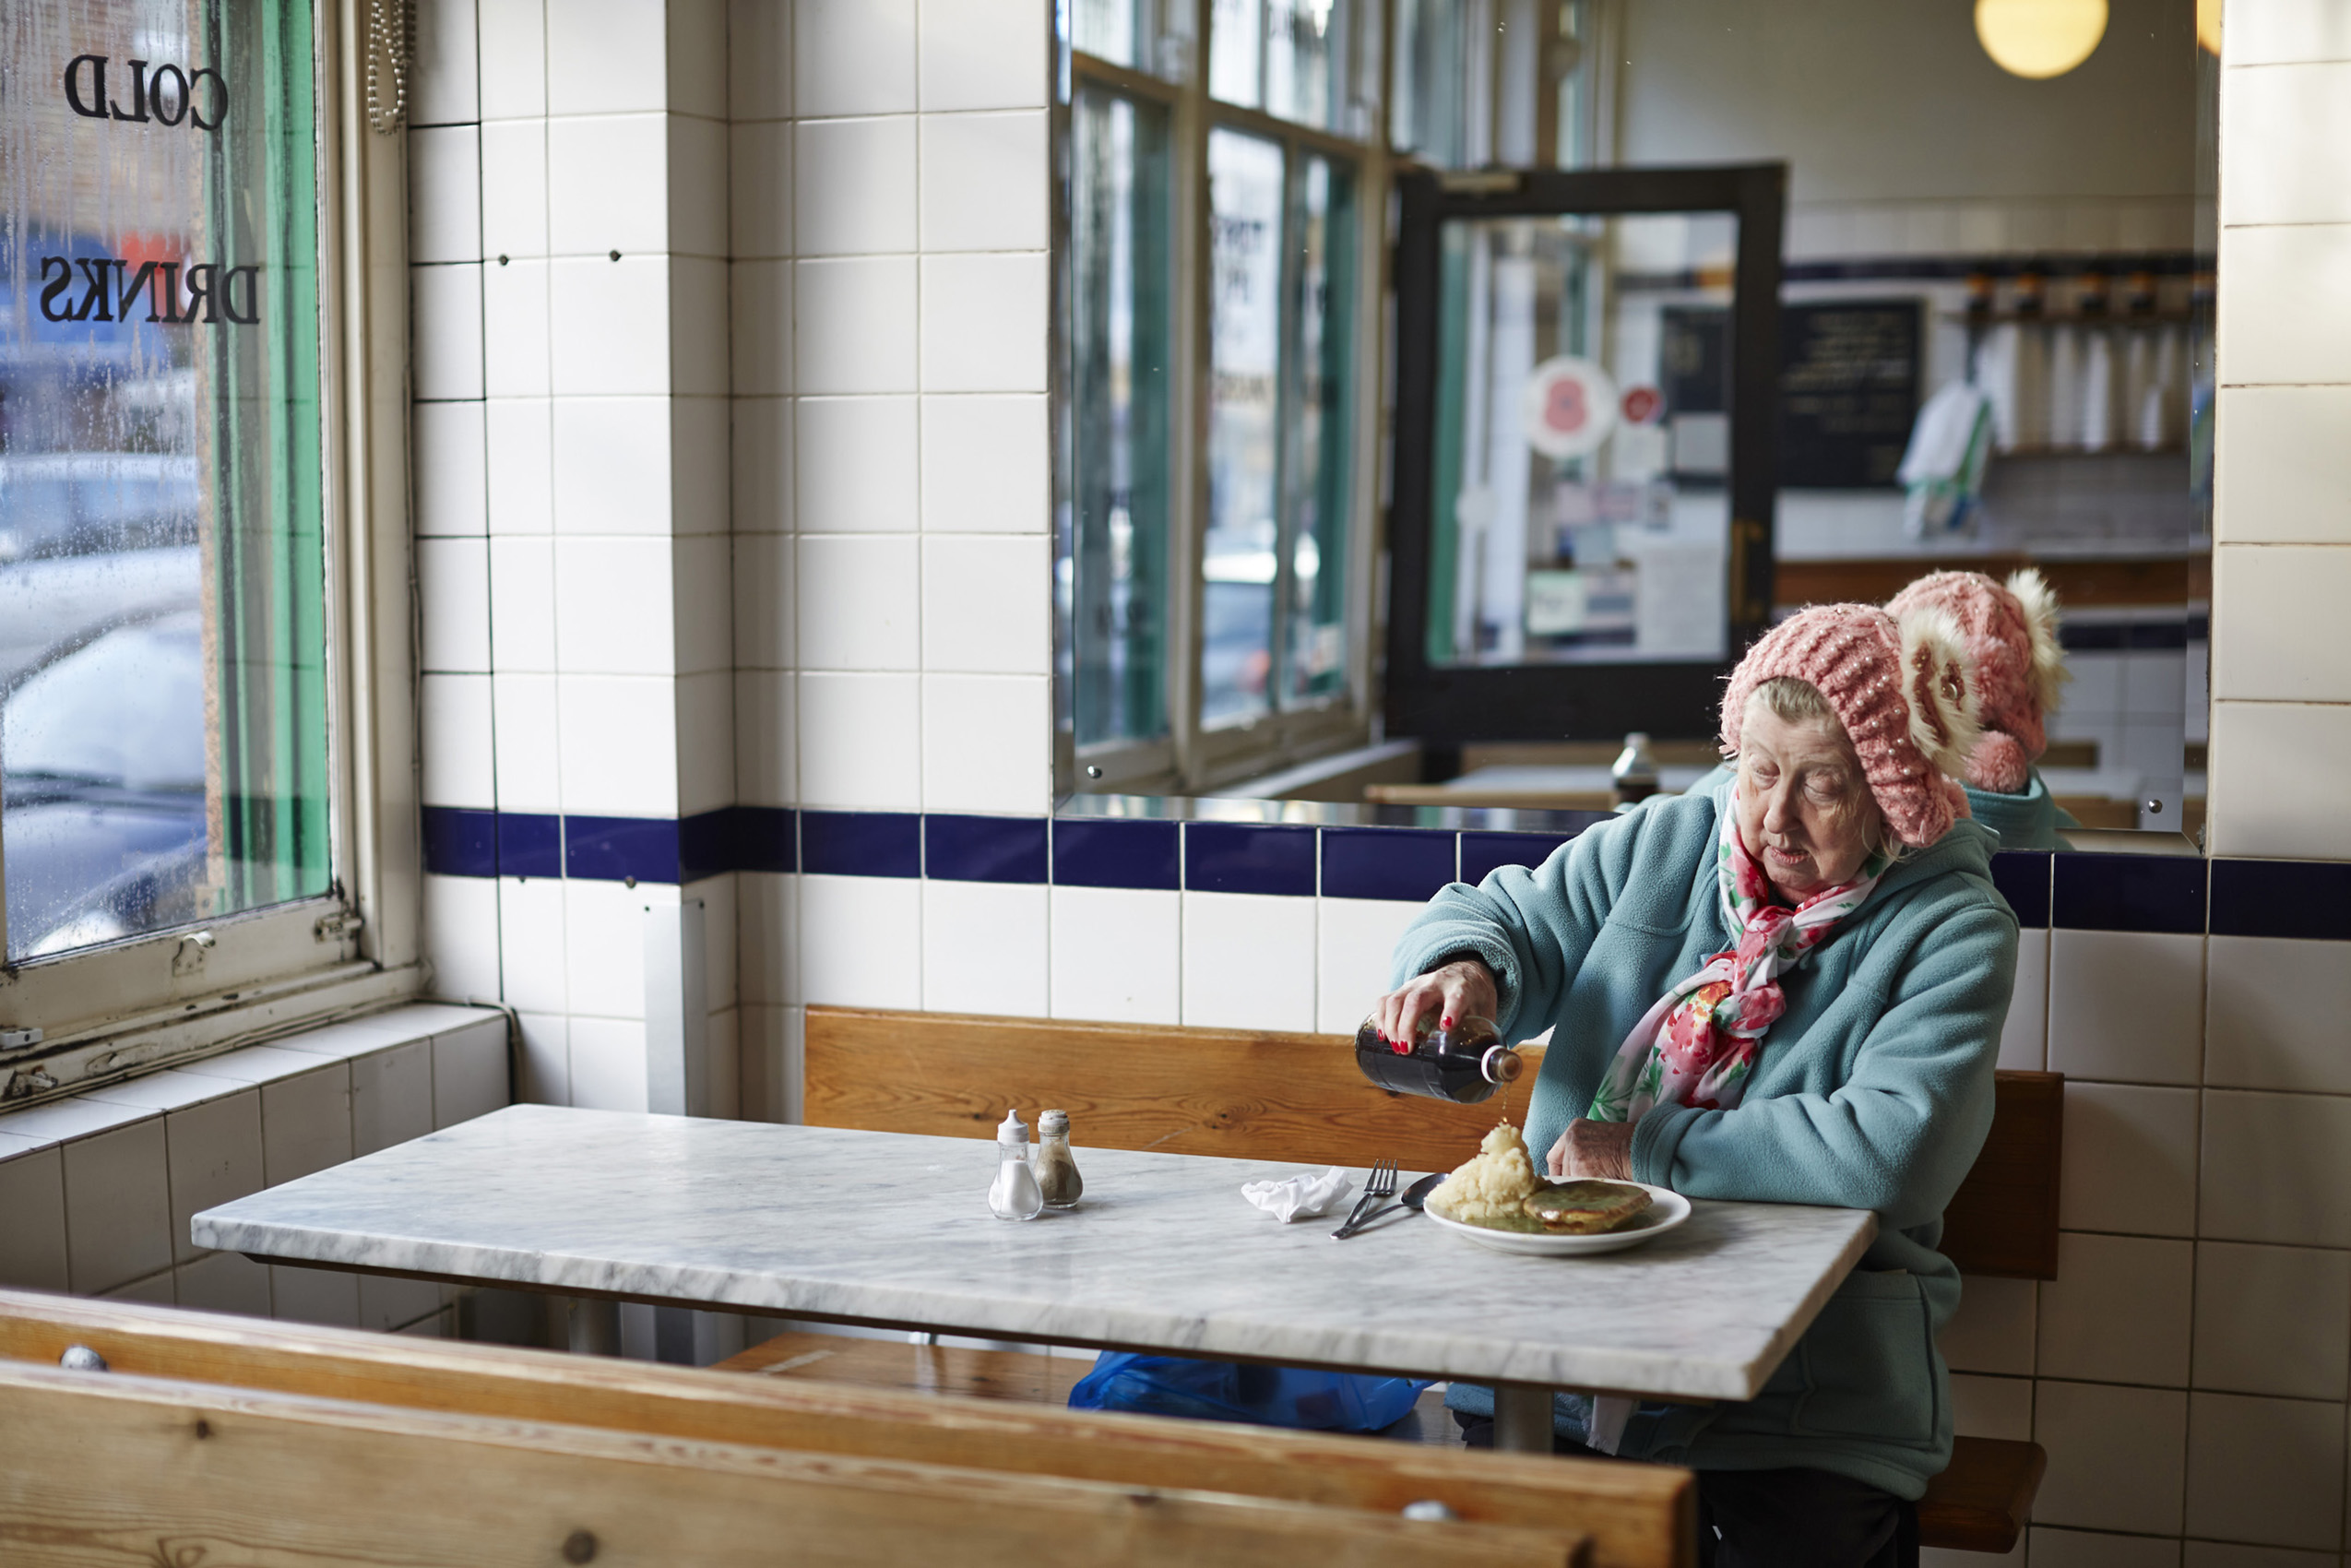 SteveRyan_Photographer_Reportage_PieandMash_London_FCooke_16